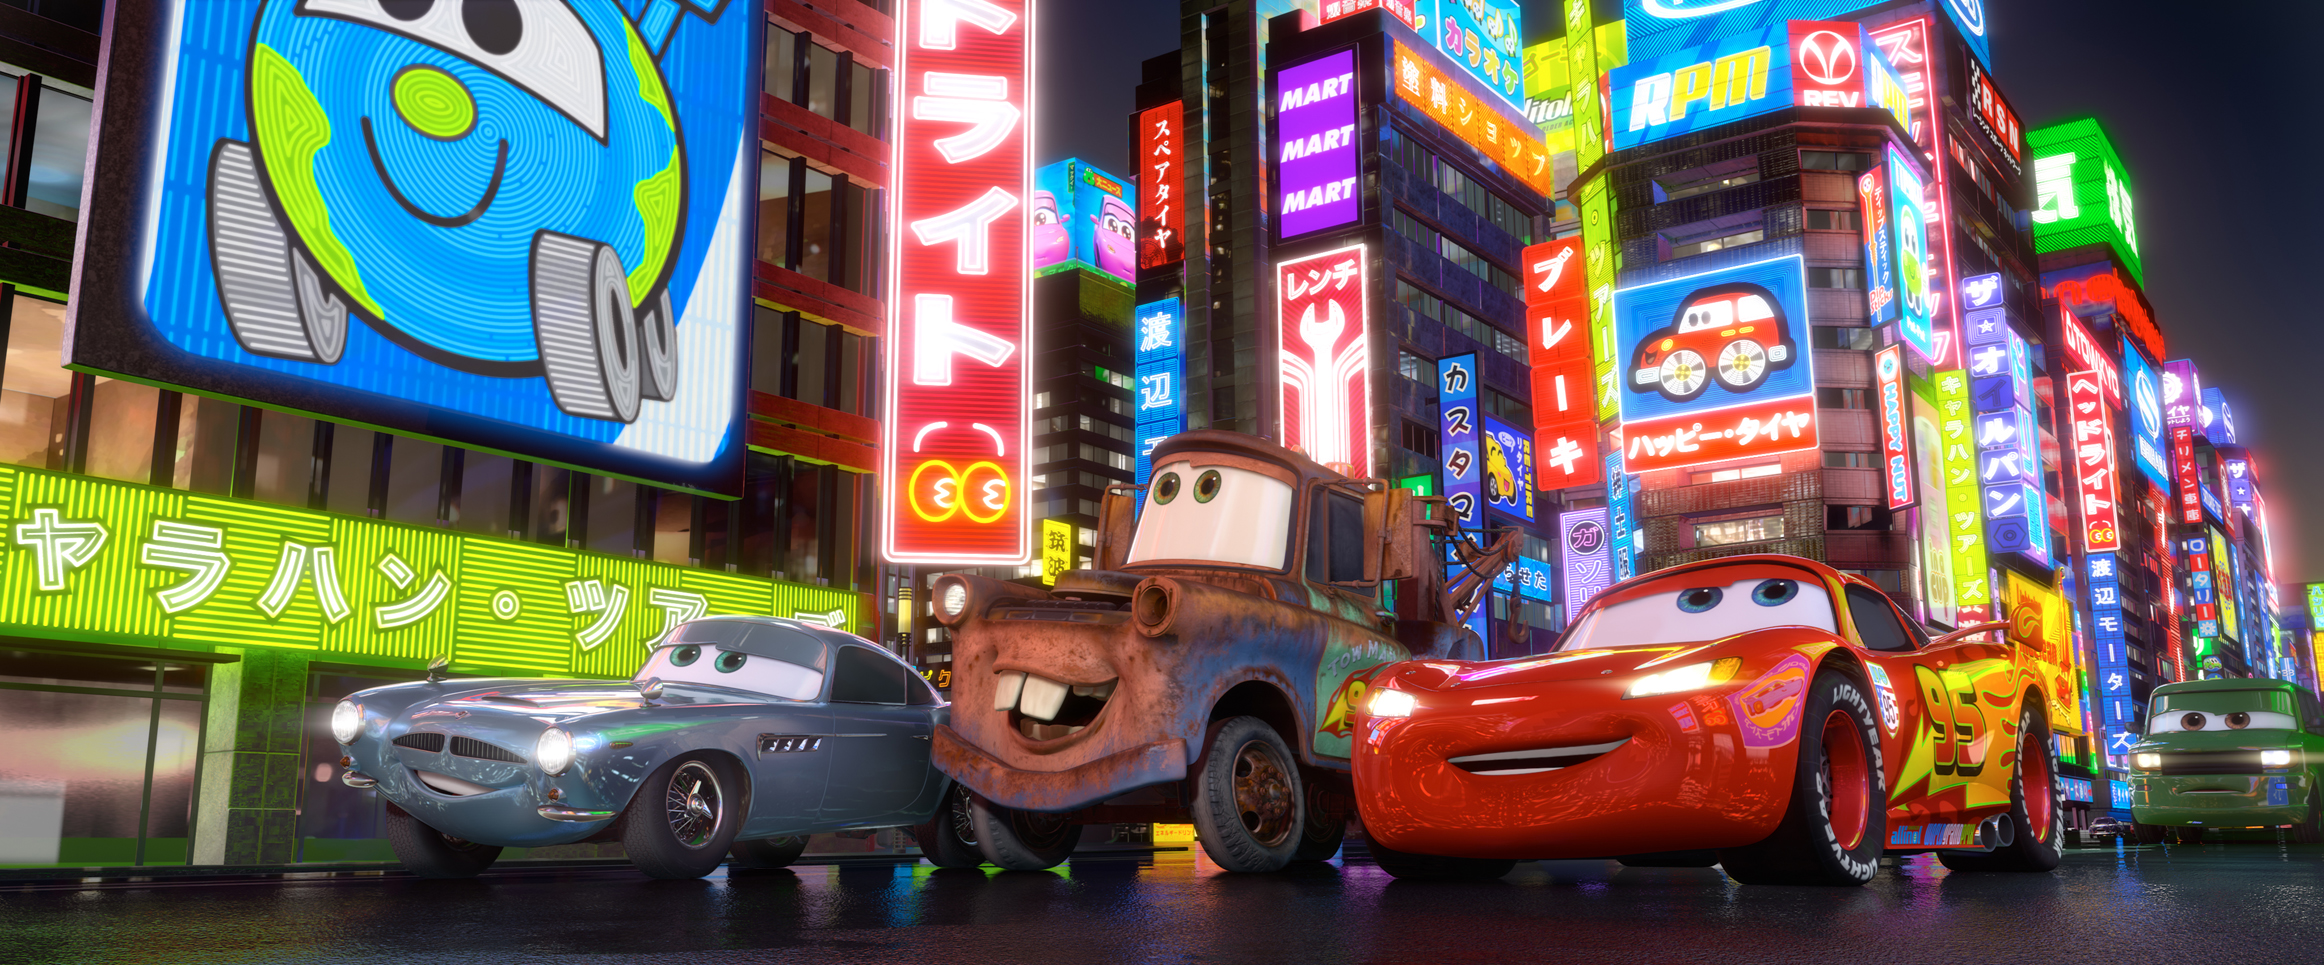 New Image From Cars 2 Shows Off Japan